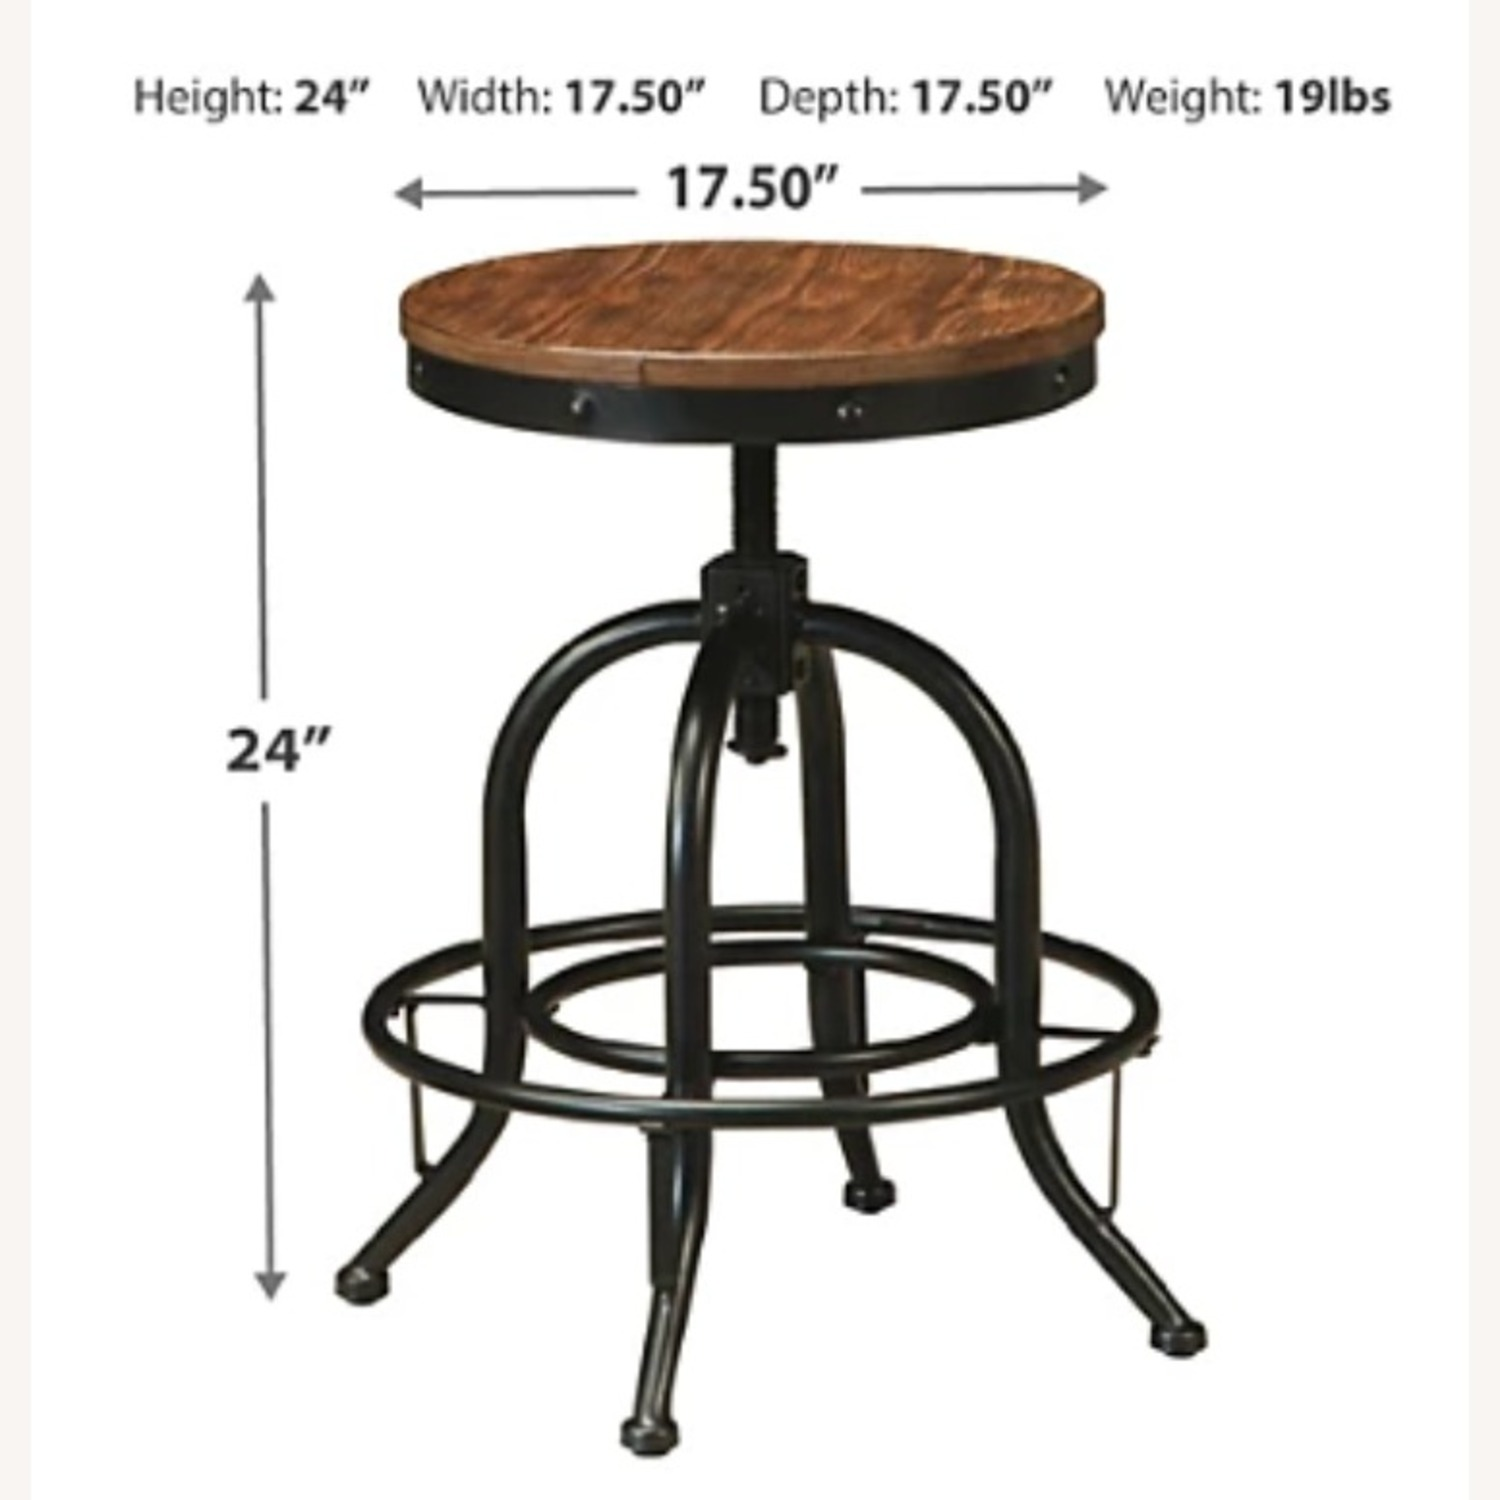 Ashley Furniture Dining Room Bar Table and Bar Stools (4) - image-5